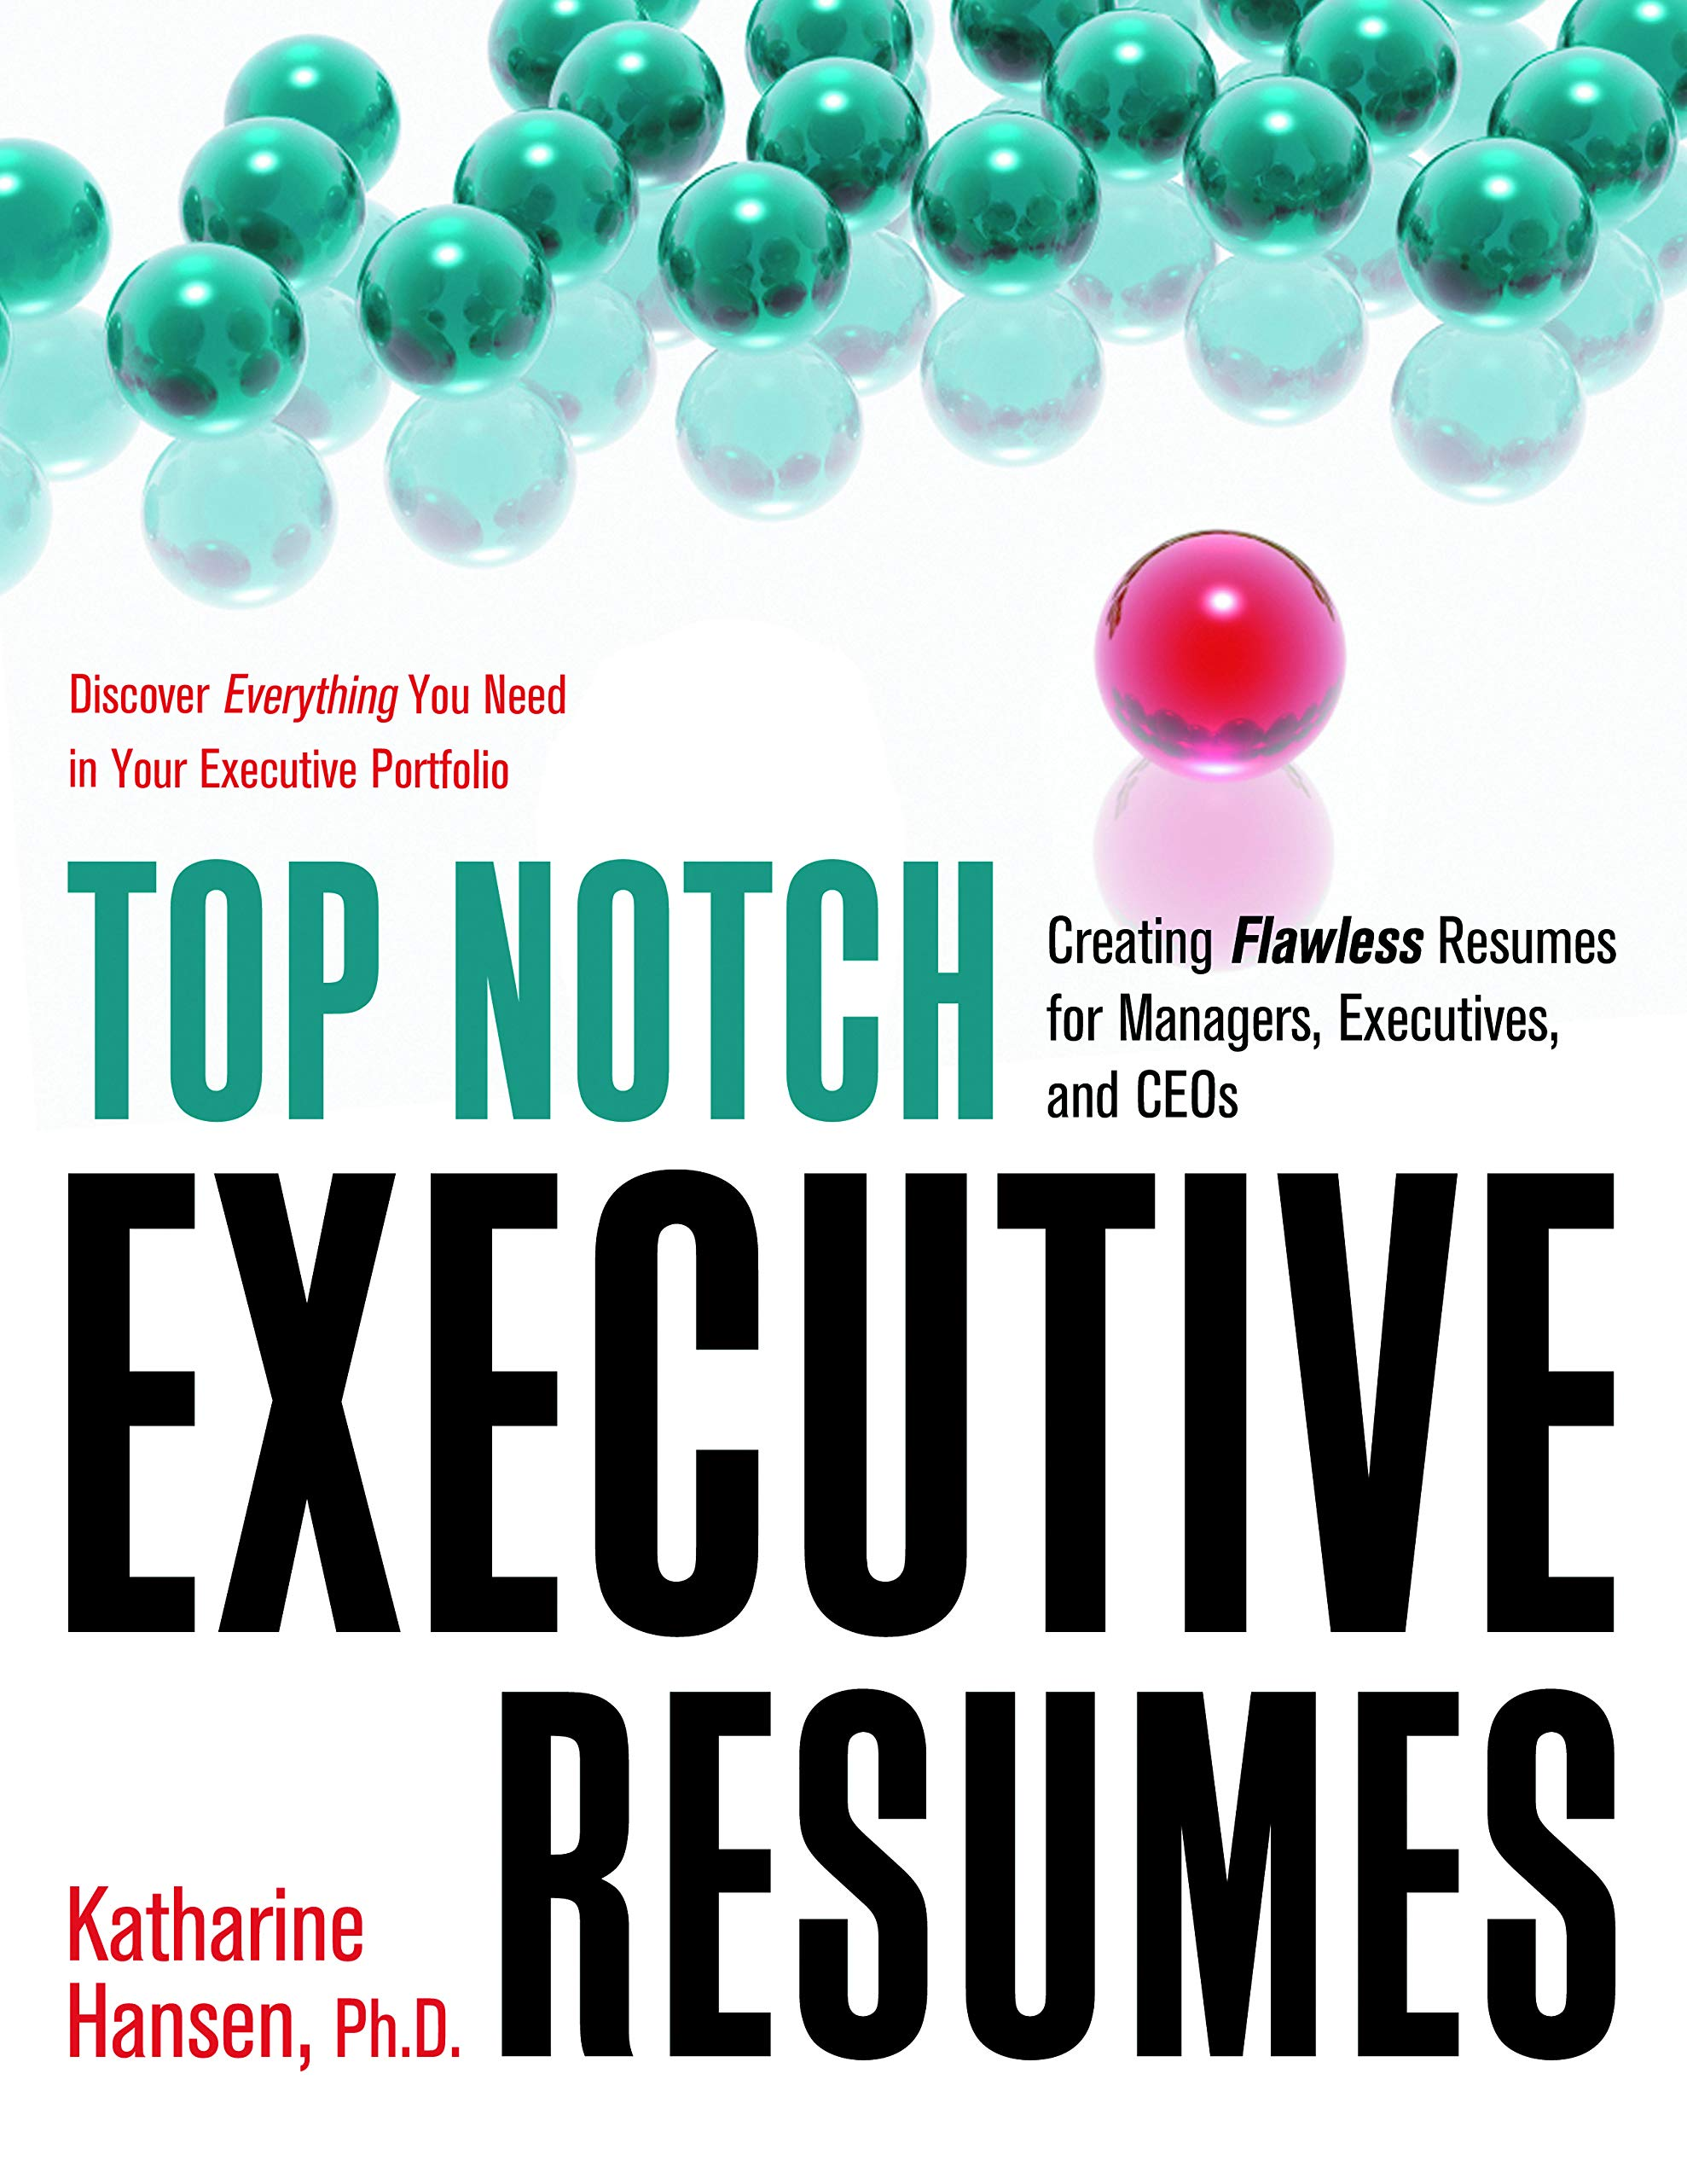 Executive resume book how to write numbers in persian